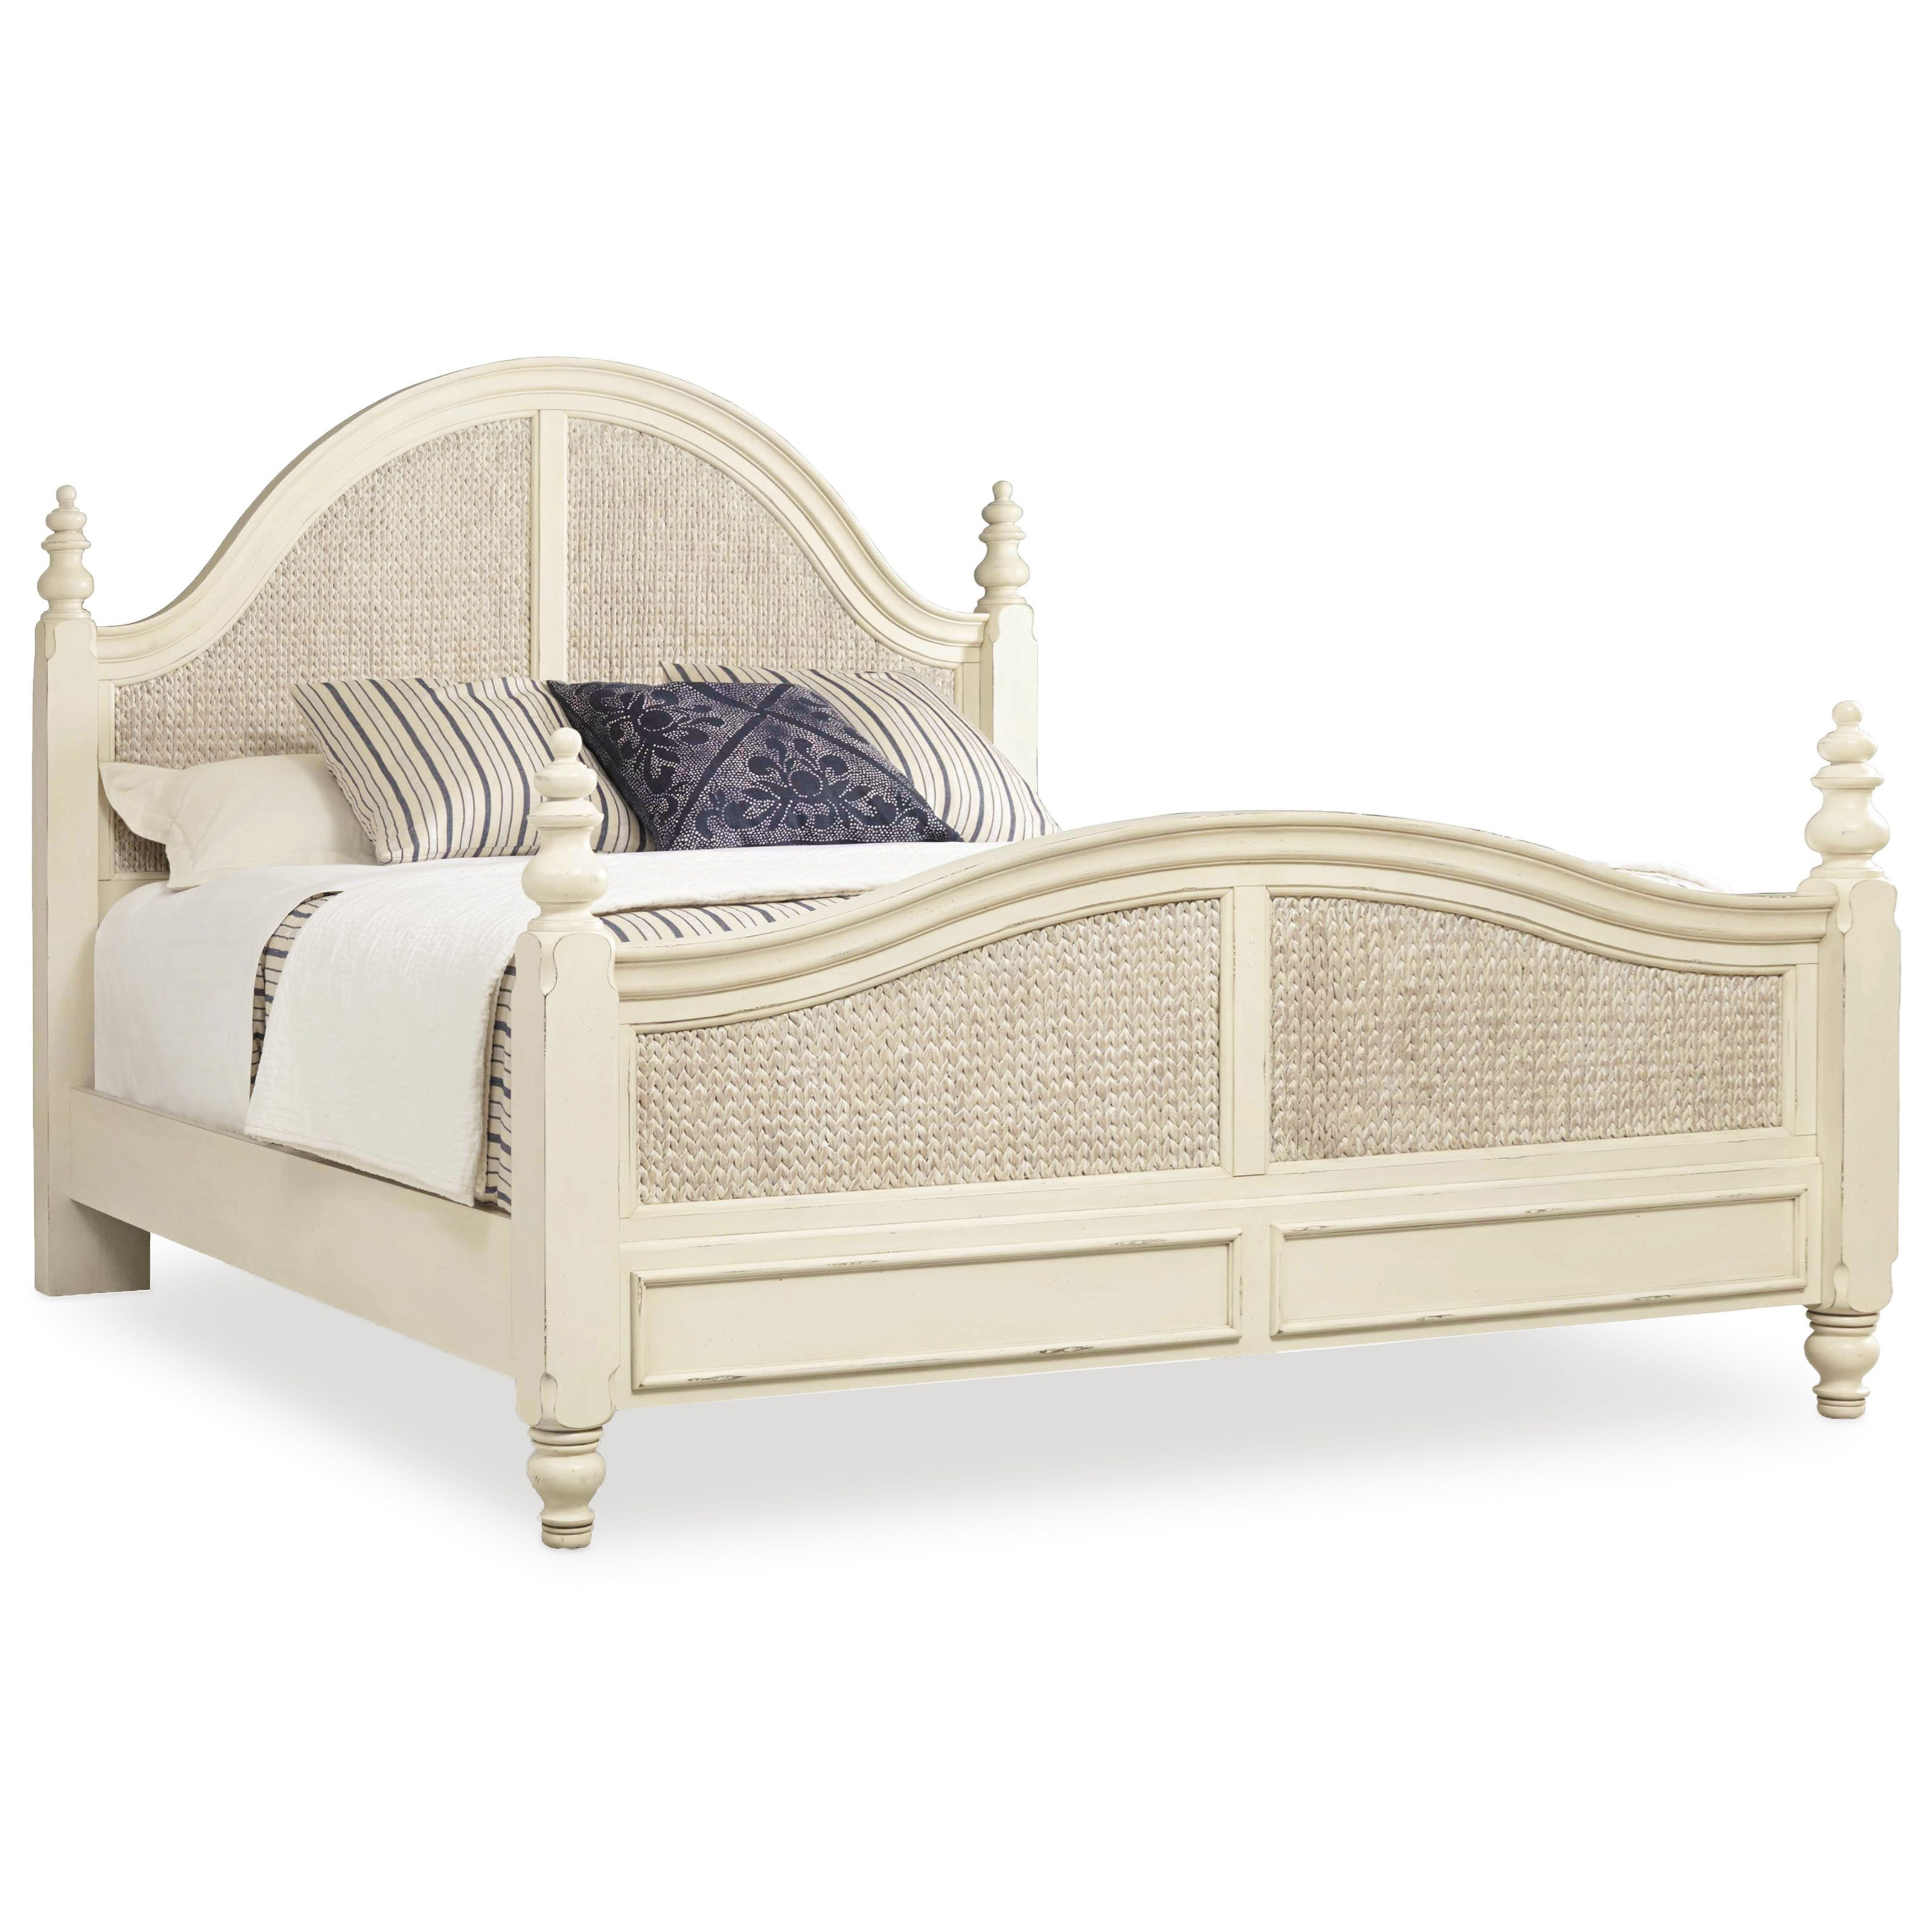 Hooker Furniture Sandcastle Queen Woven Panel Bed - Item Number: 5900-90250-WH